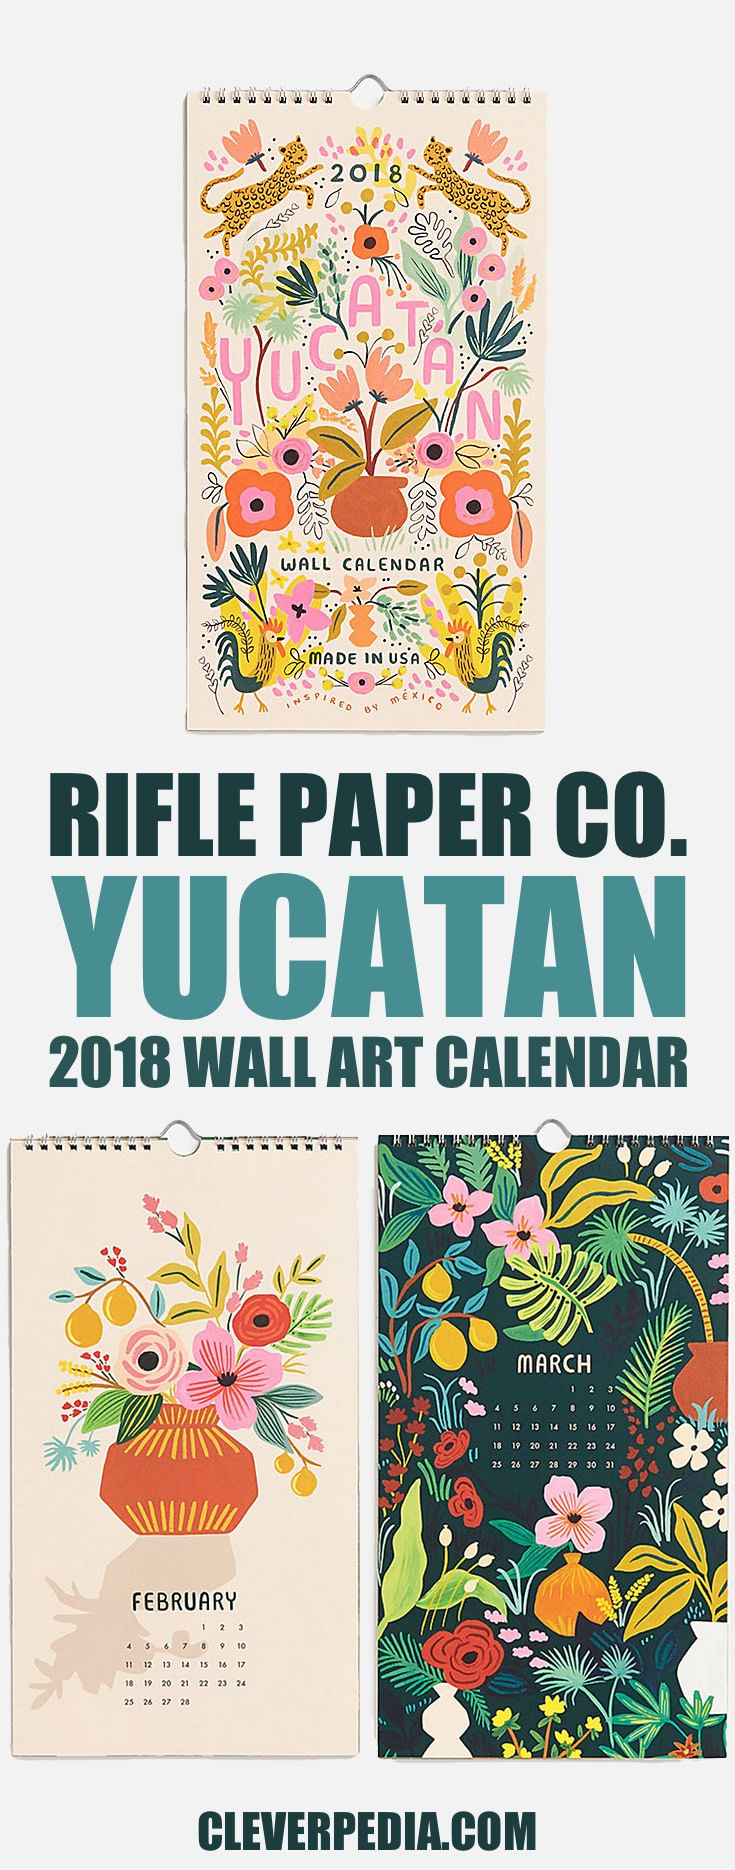 This beautiful spiral-bound wall calendar by Rifle Paper Co. includes 12 original illustrations inspired by Mexico and the Yucatan Peninsula. I love the playful flora and fauna designs in this cheerful calendar.